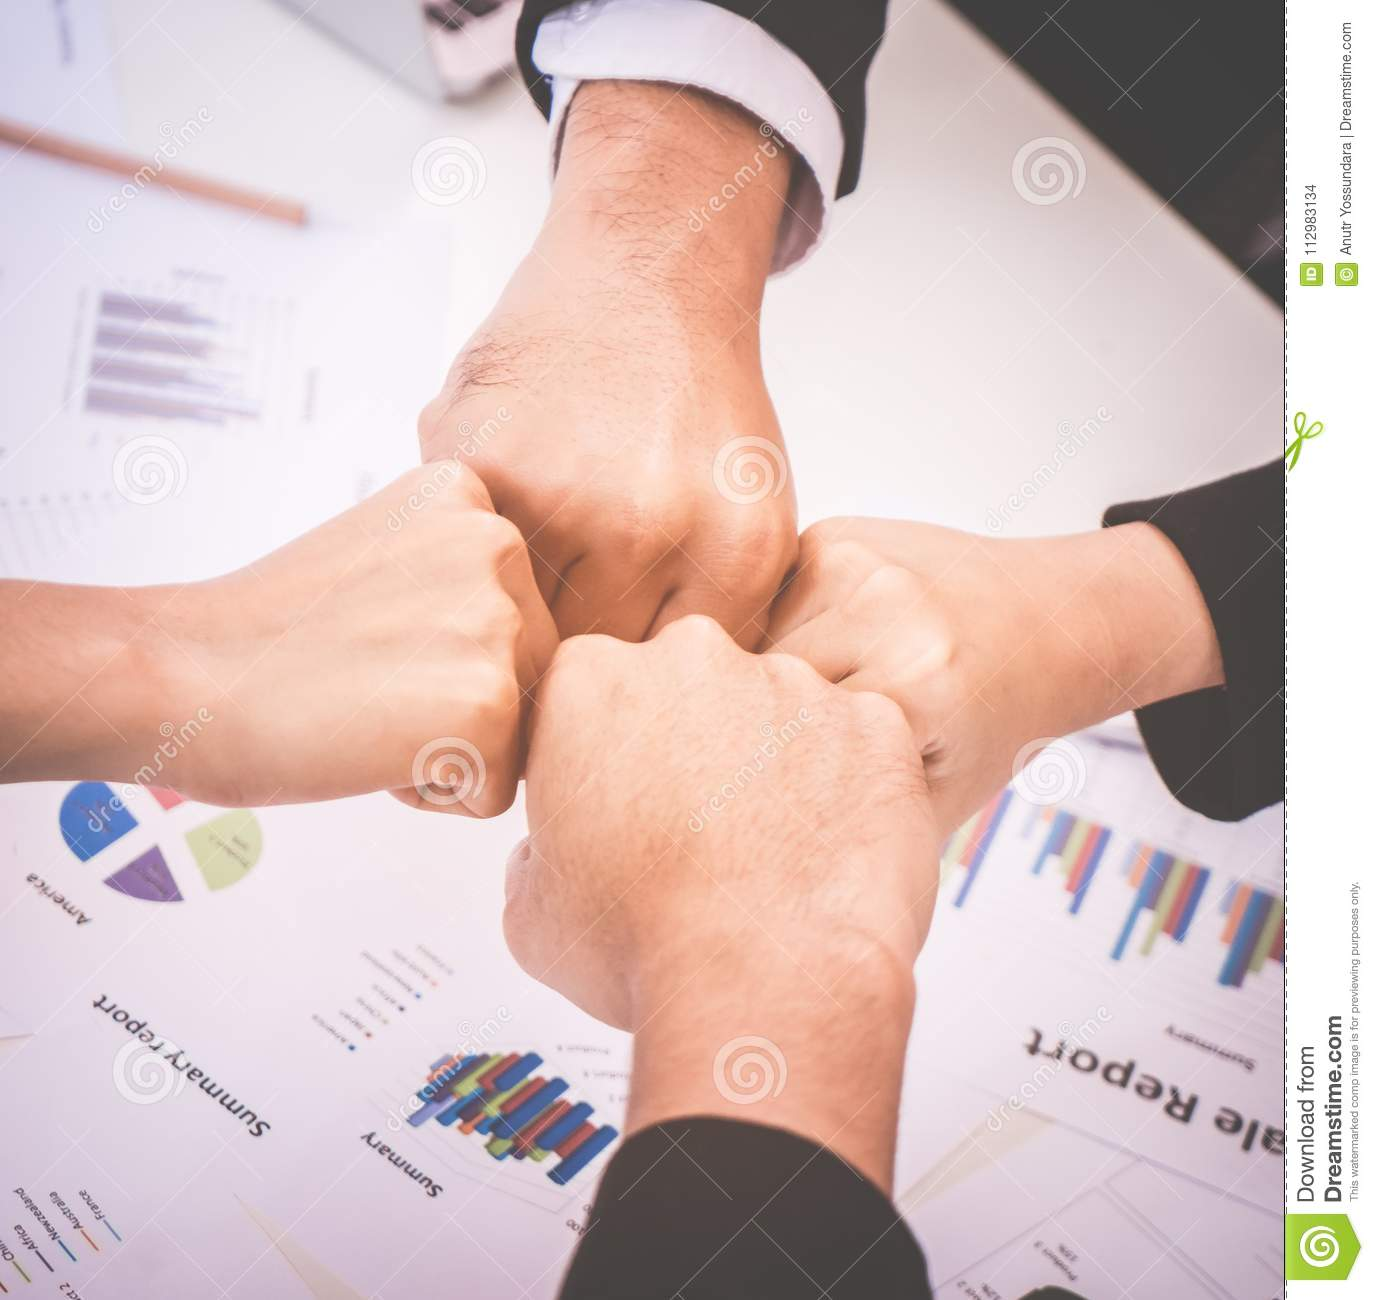 Fist bump in business meeting for team concept